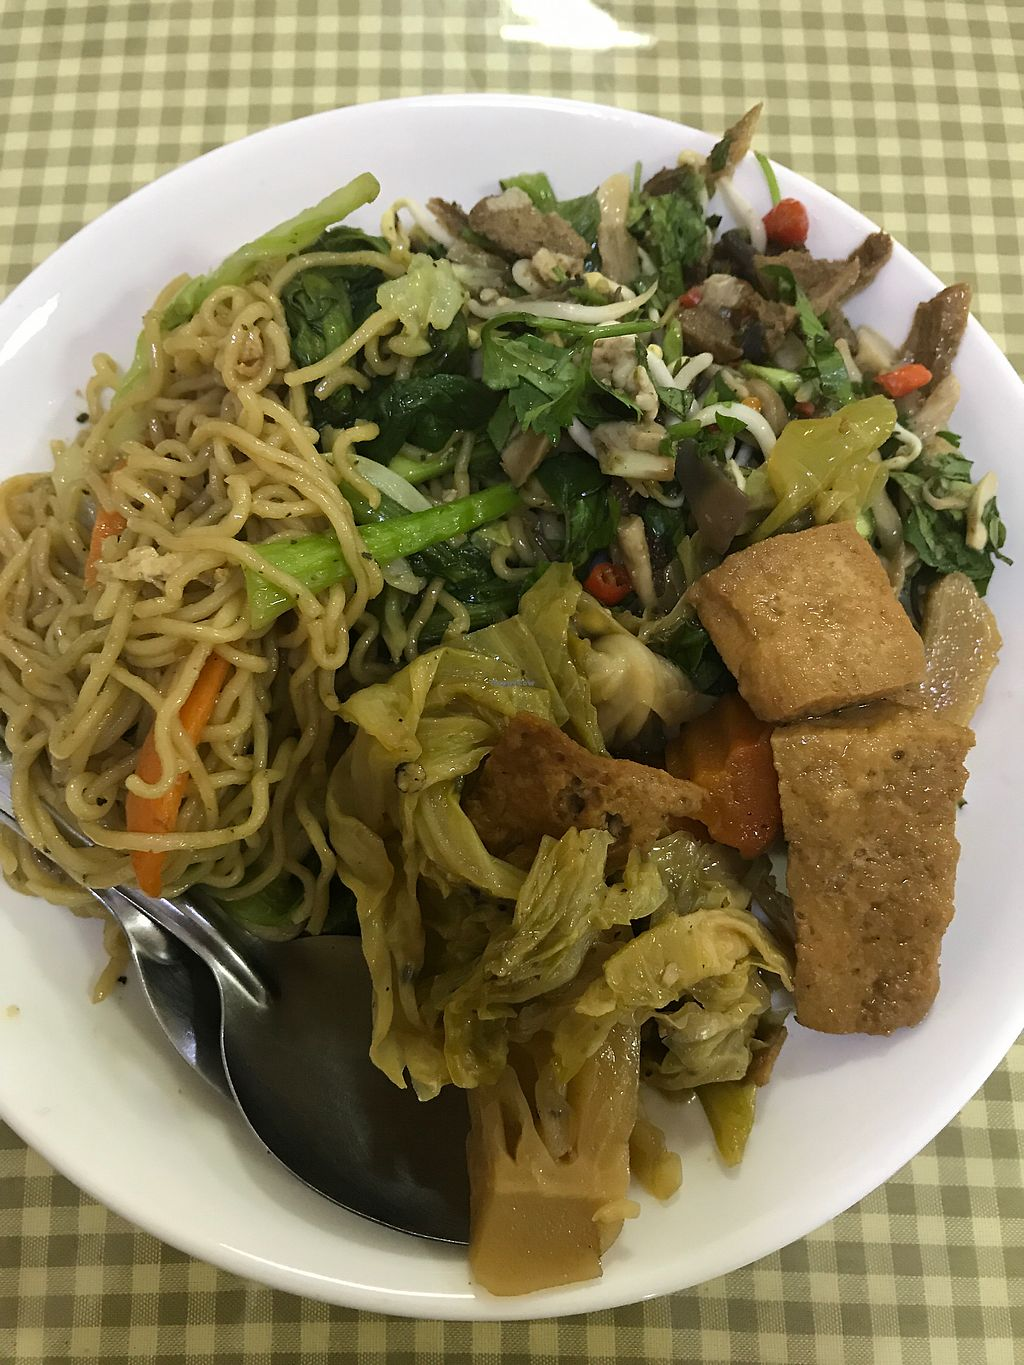 "Photo of Khouadin Vegetarian  by <a href=""/members/profile/Zerthis"">Zerthis</a> <br/>Noodles, tofu, and other vegan deliciousness <br/> August 28, 2017  - <a href='/contact/abuse/image/8550/298143'>Report</a>"